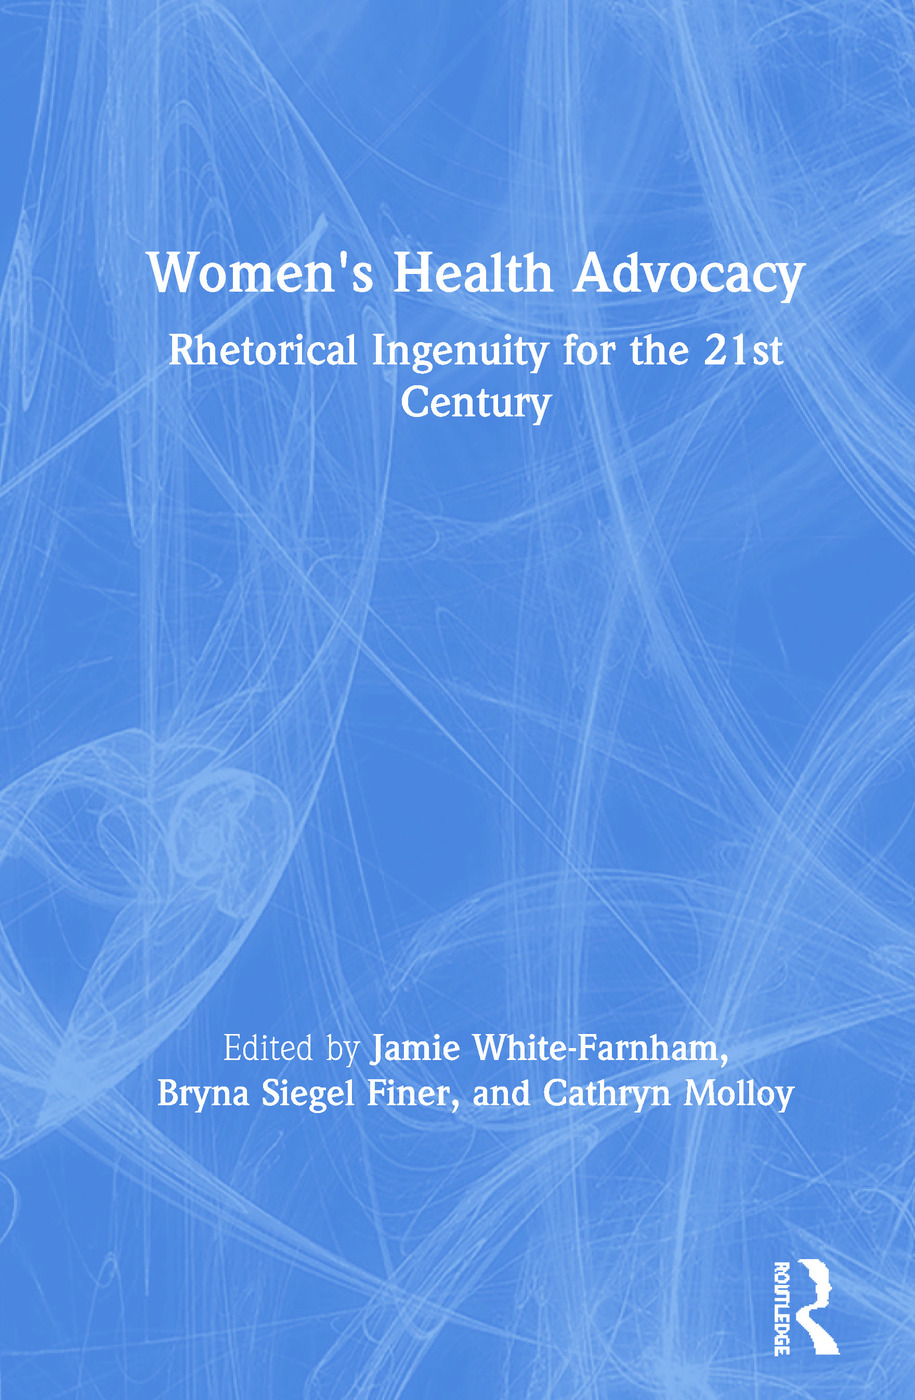 Women's Health Advocacy: Rhetorical Ingenuity for the 21st Century book cover